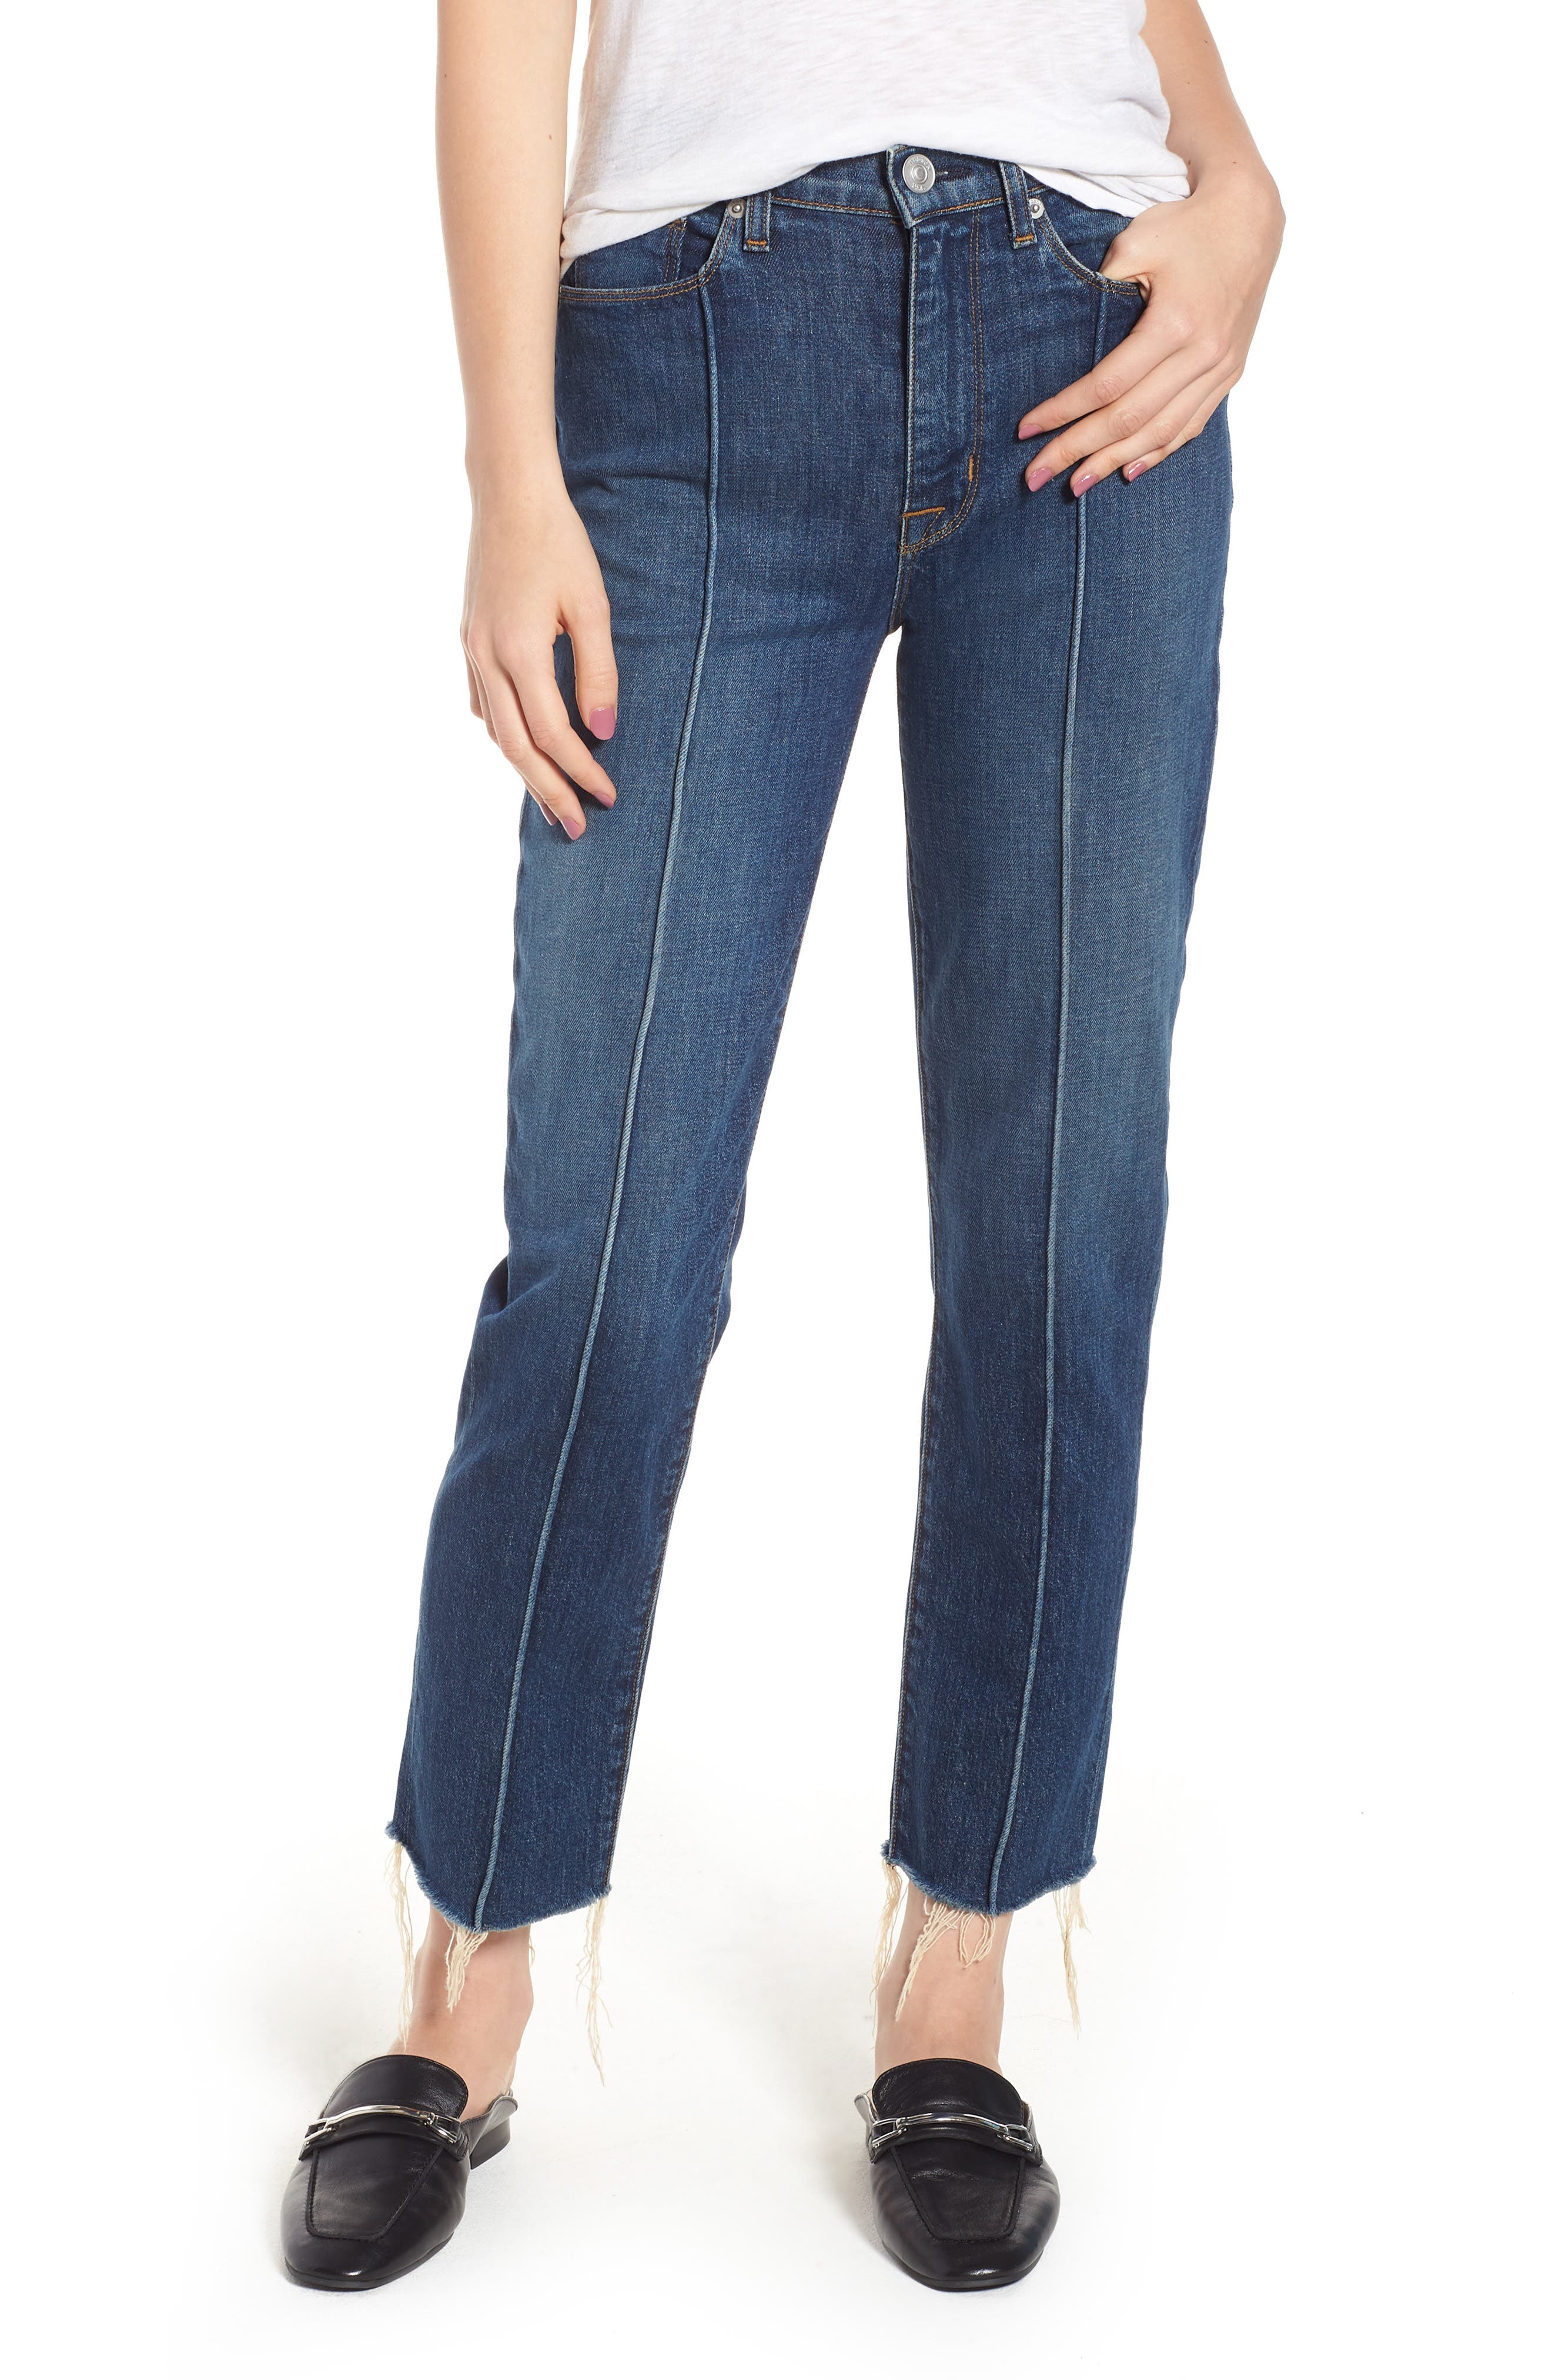 Zoeey High Waist Crop Straight Leg Jeans,                         Main,                         color, Demeanor